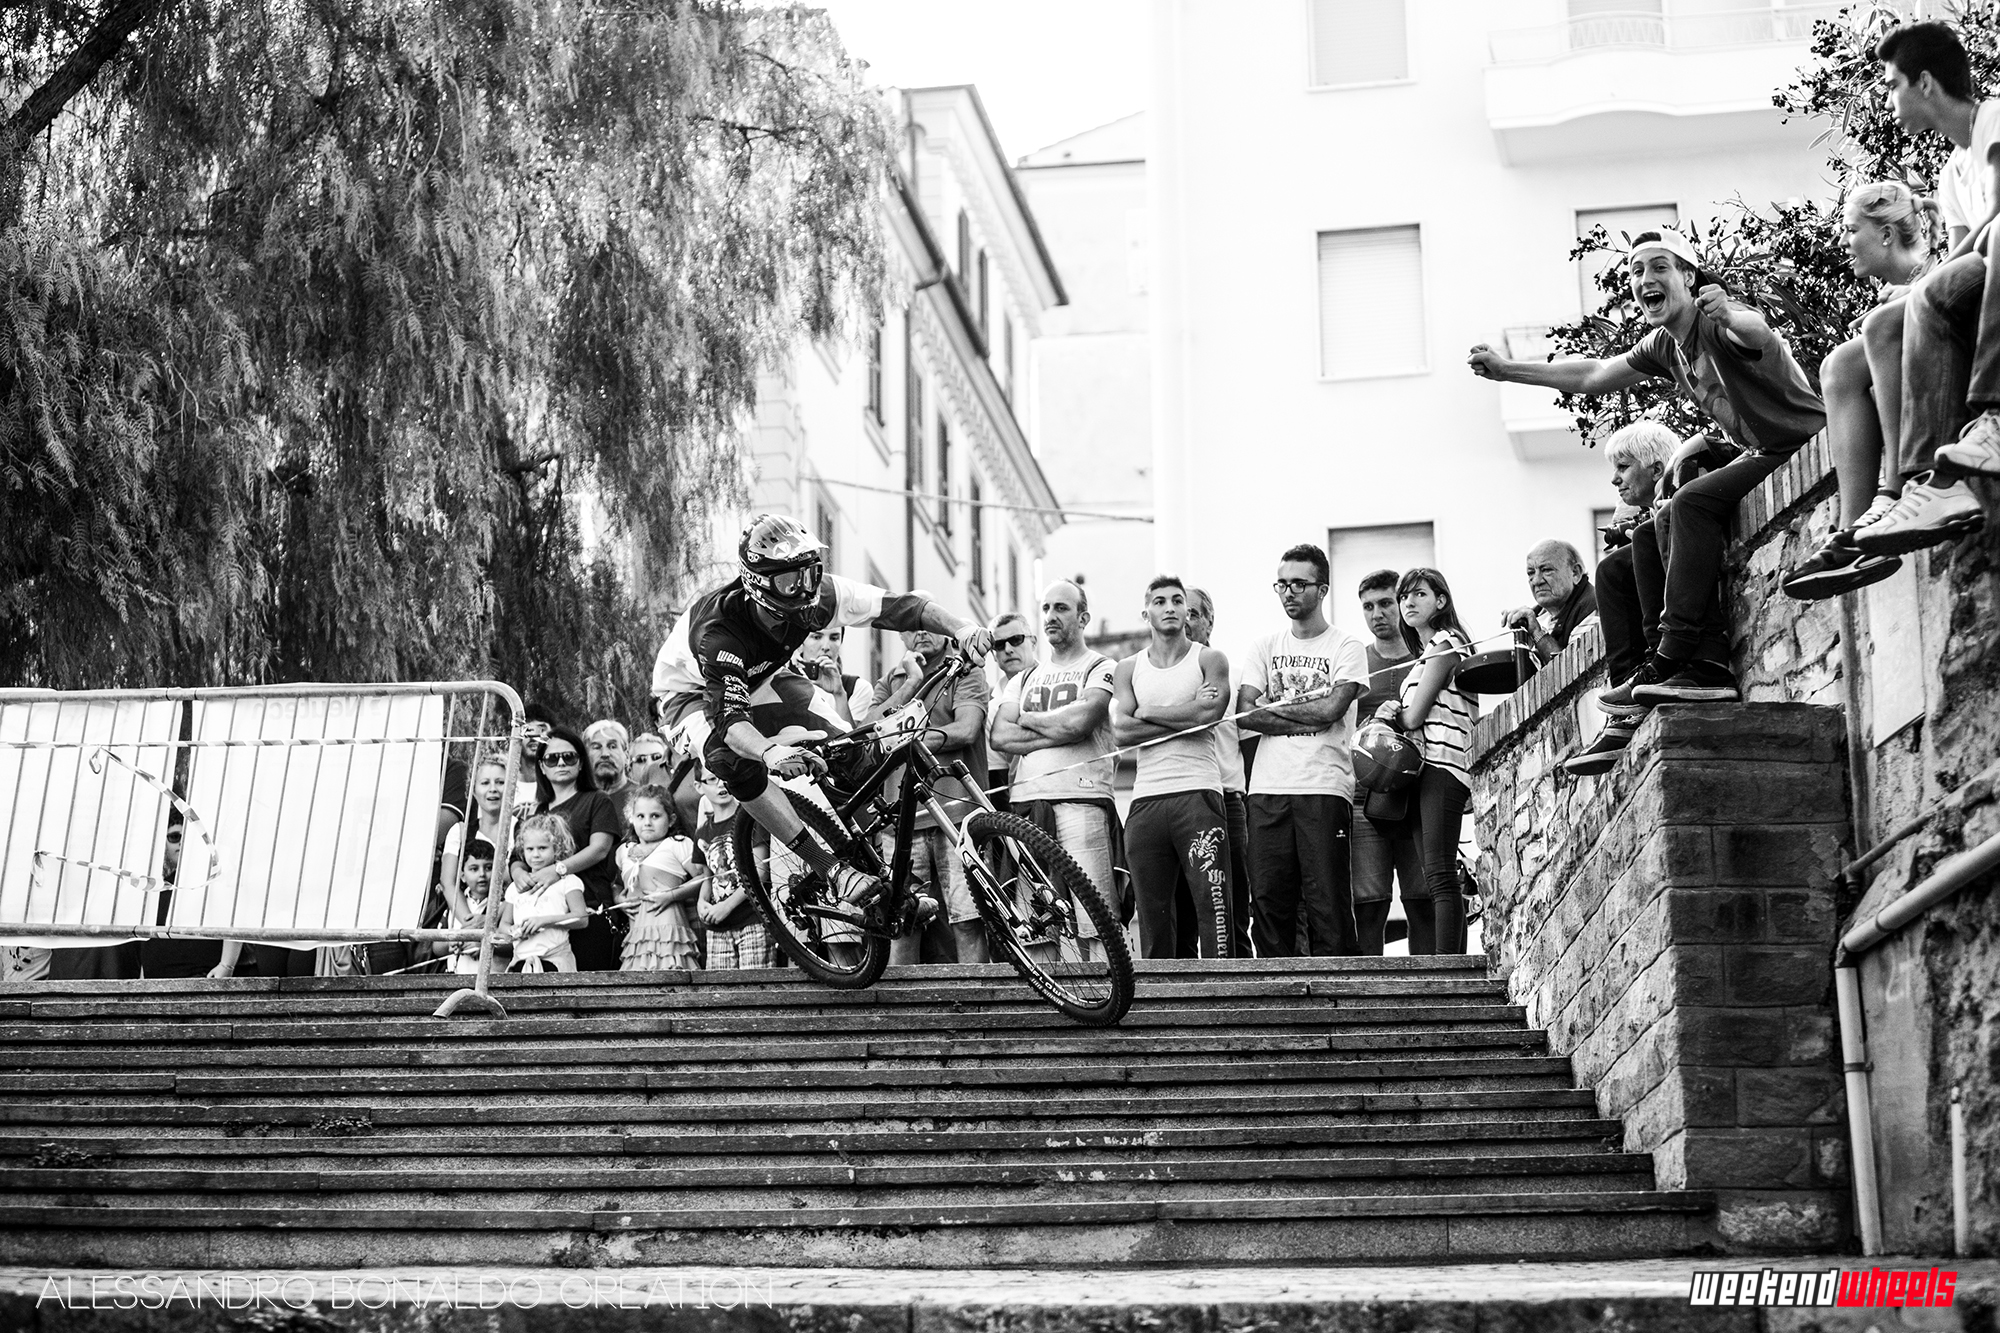 urban_downhill_imperia_2014_fregona2